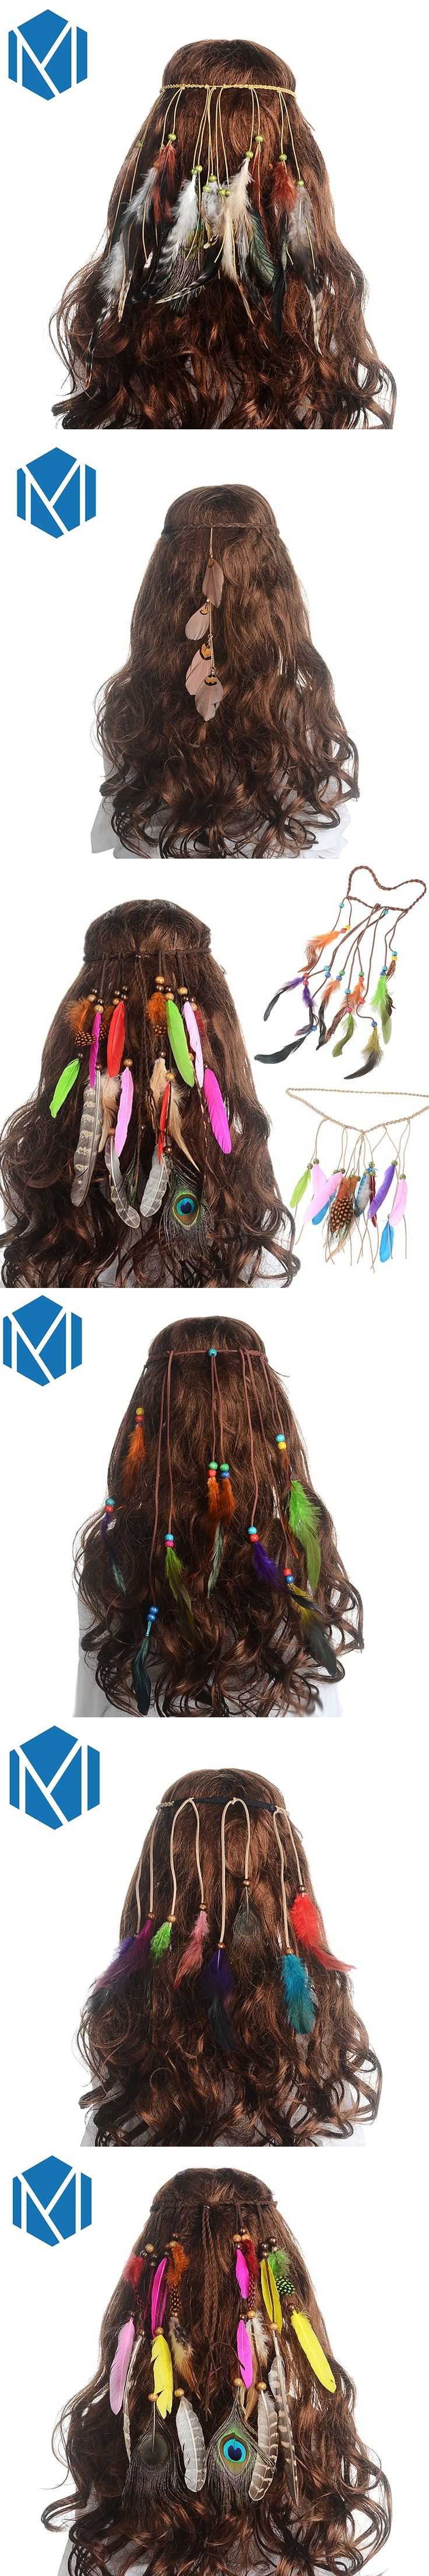 Girls Fashion Colorful Feather Headband 2017 New Festival Hippie Hair Band Accessories for Women Boho Styling Peacock Headdress